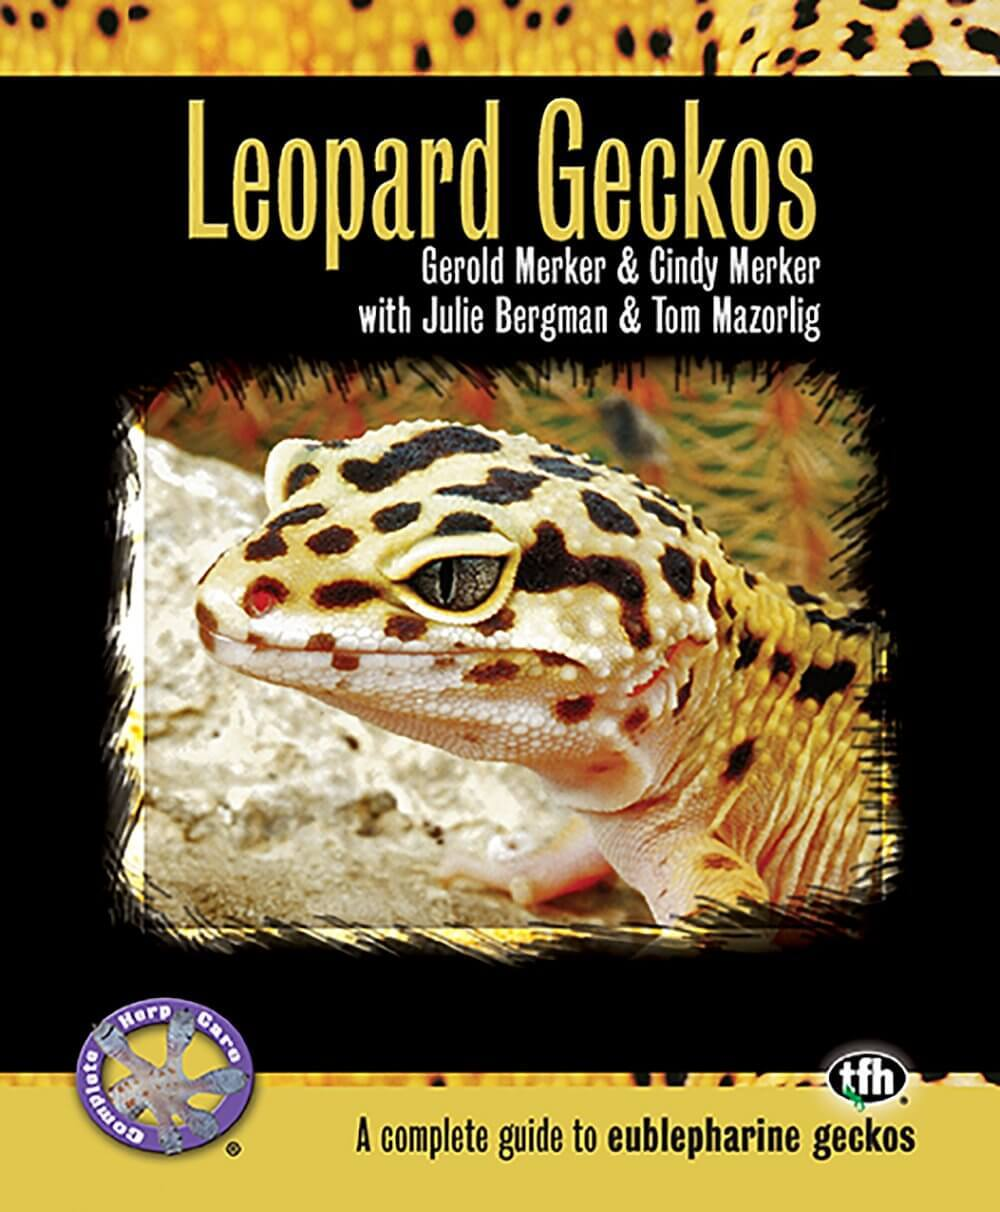 Leopard Geckos by Gerald Merker and Cindy Merker